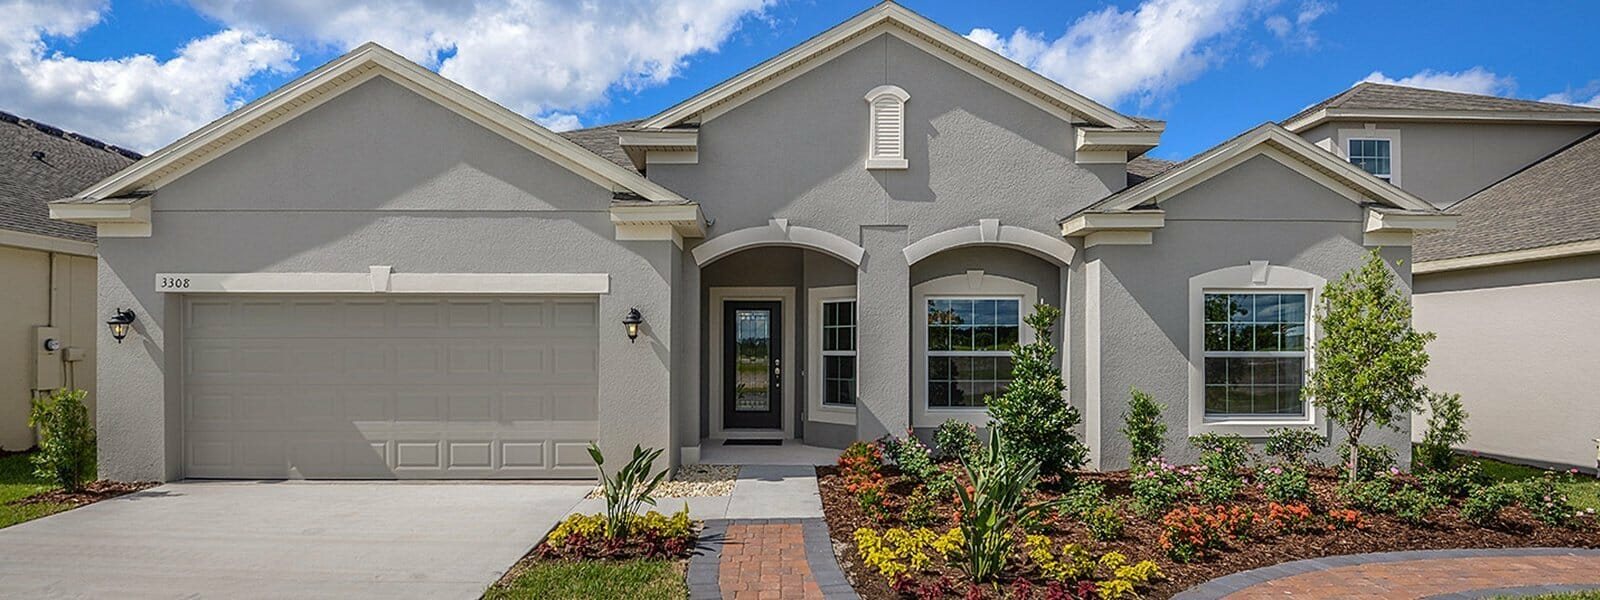 55 Communities near Orlando FL | The Lakes at Harmony | 55+ Lennar